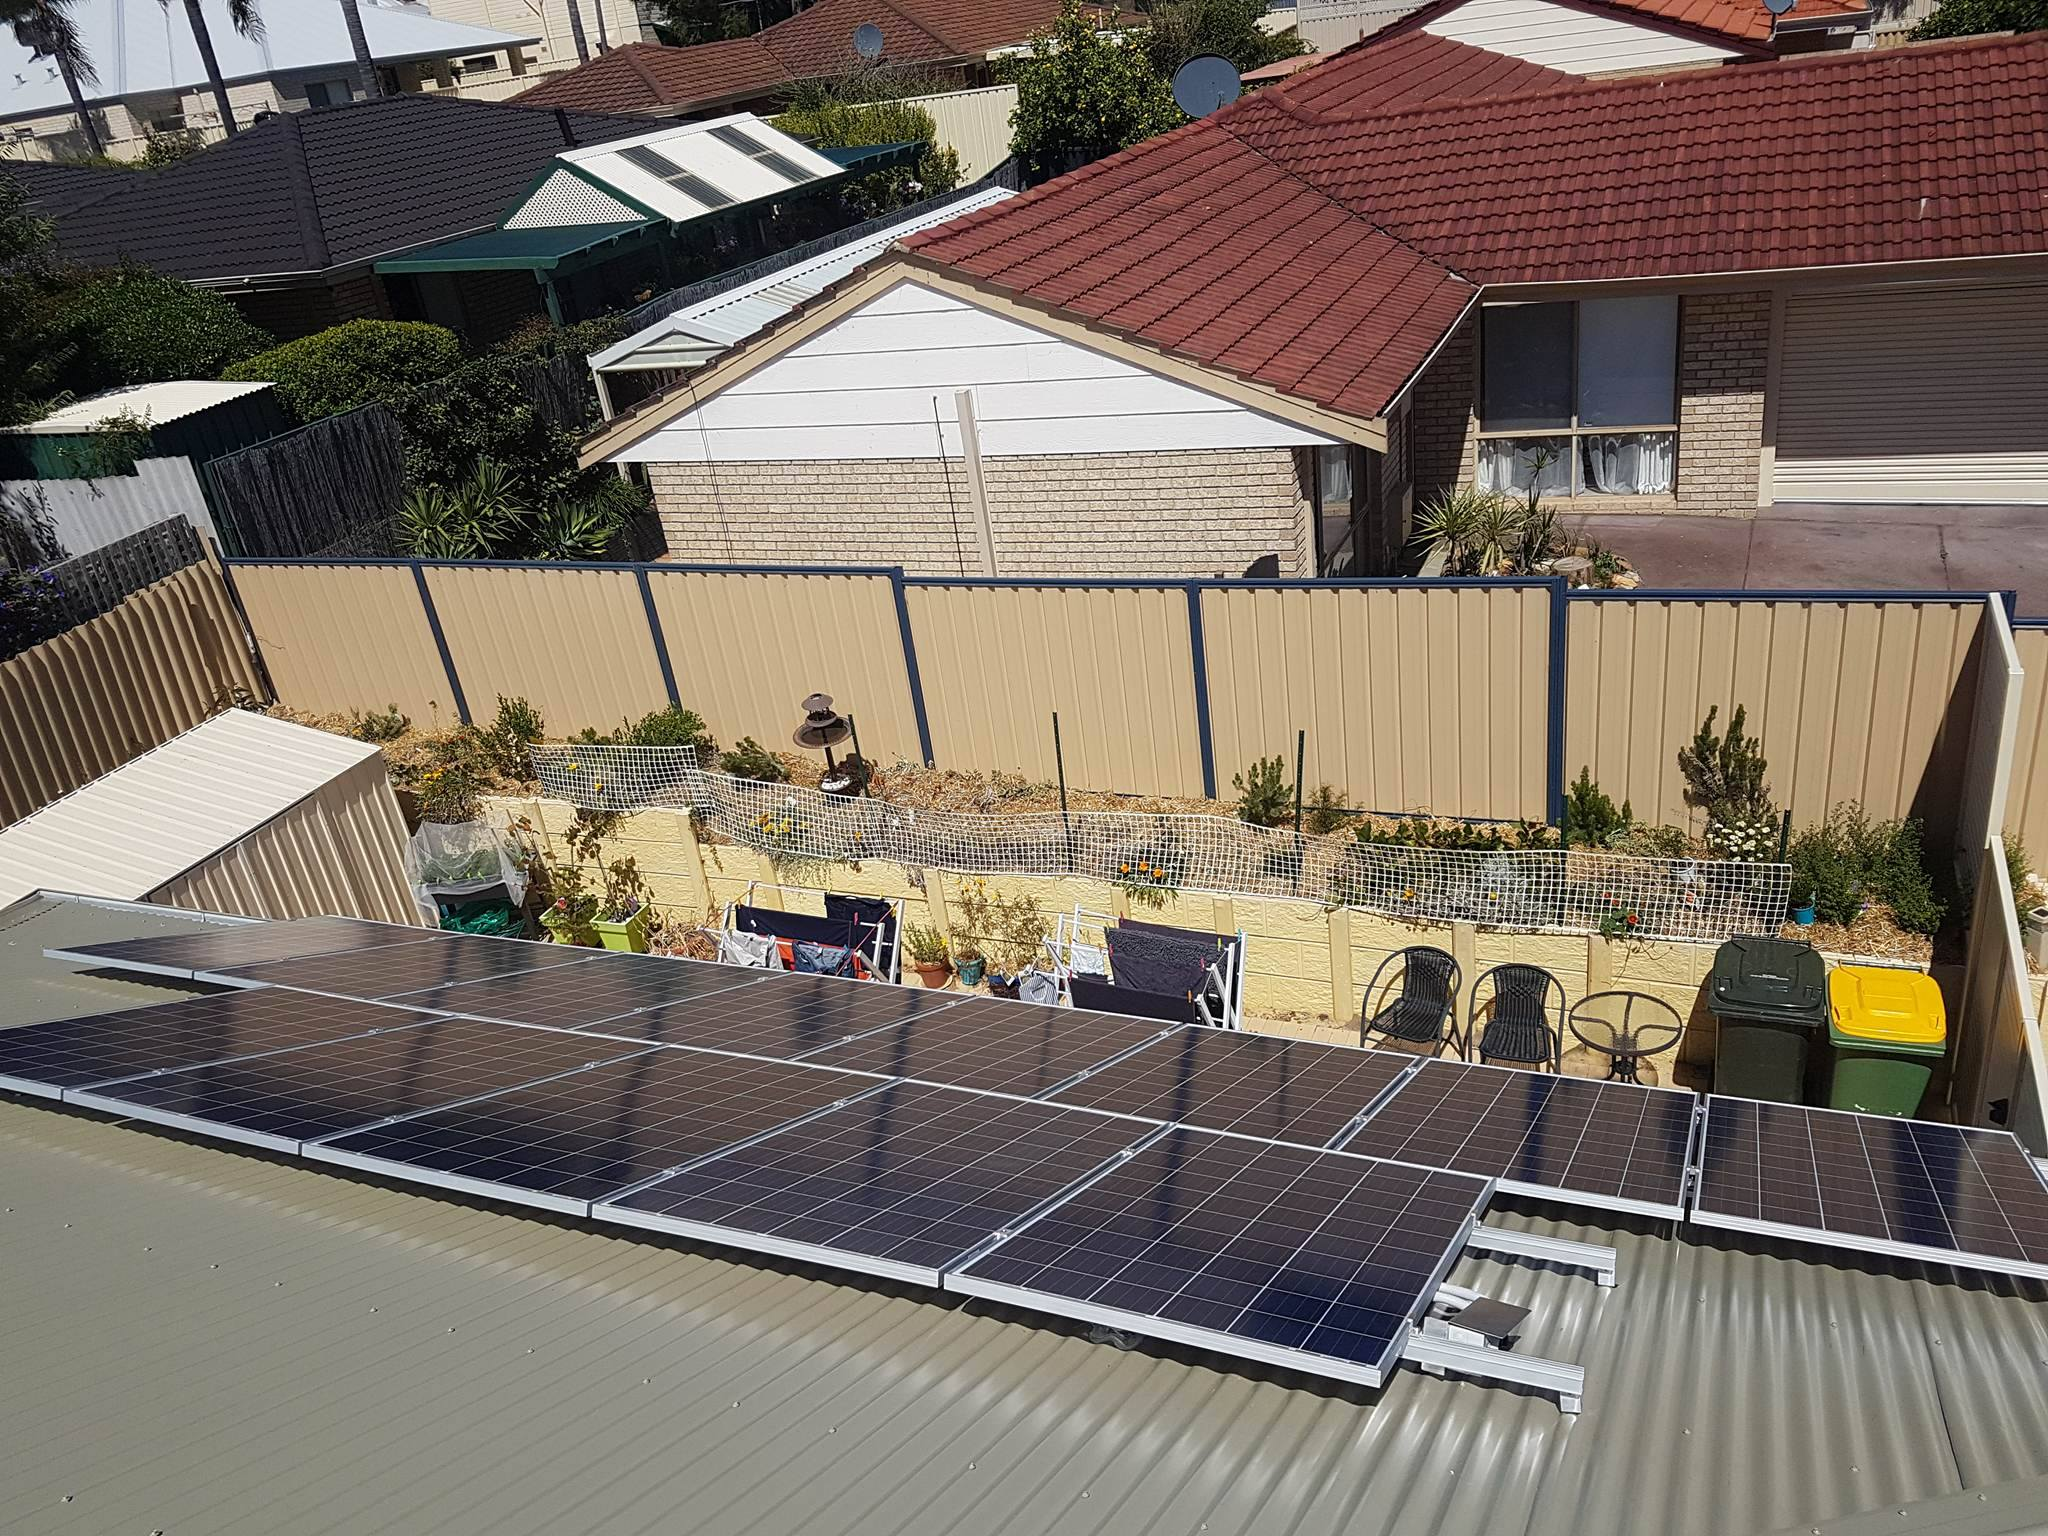 ELECTRICAL WORK AT PERTH SOLAR